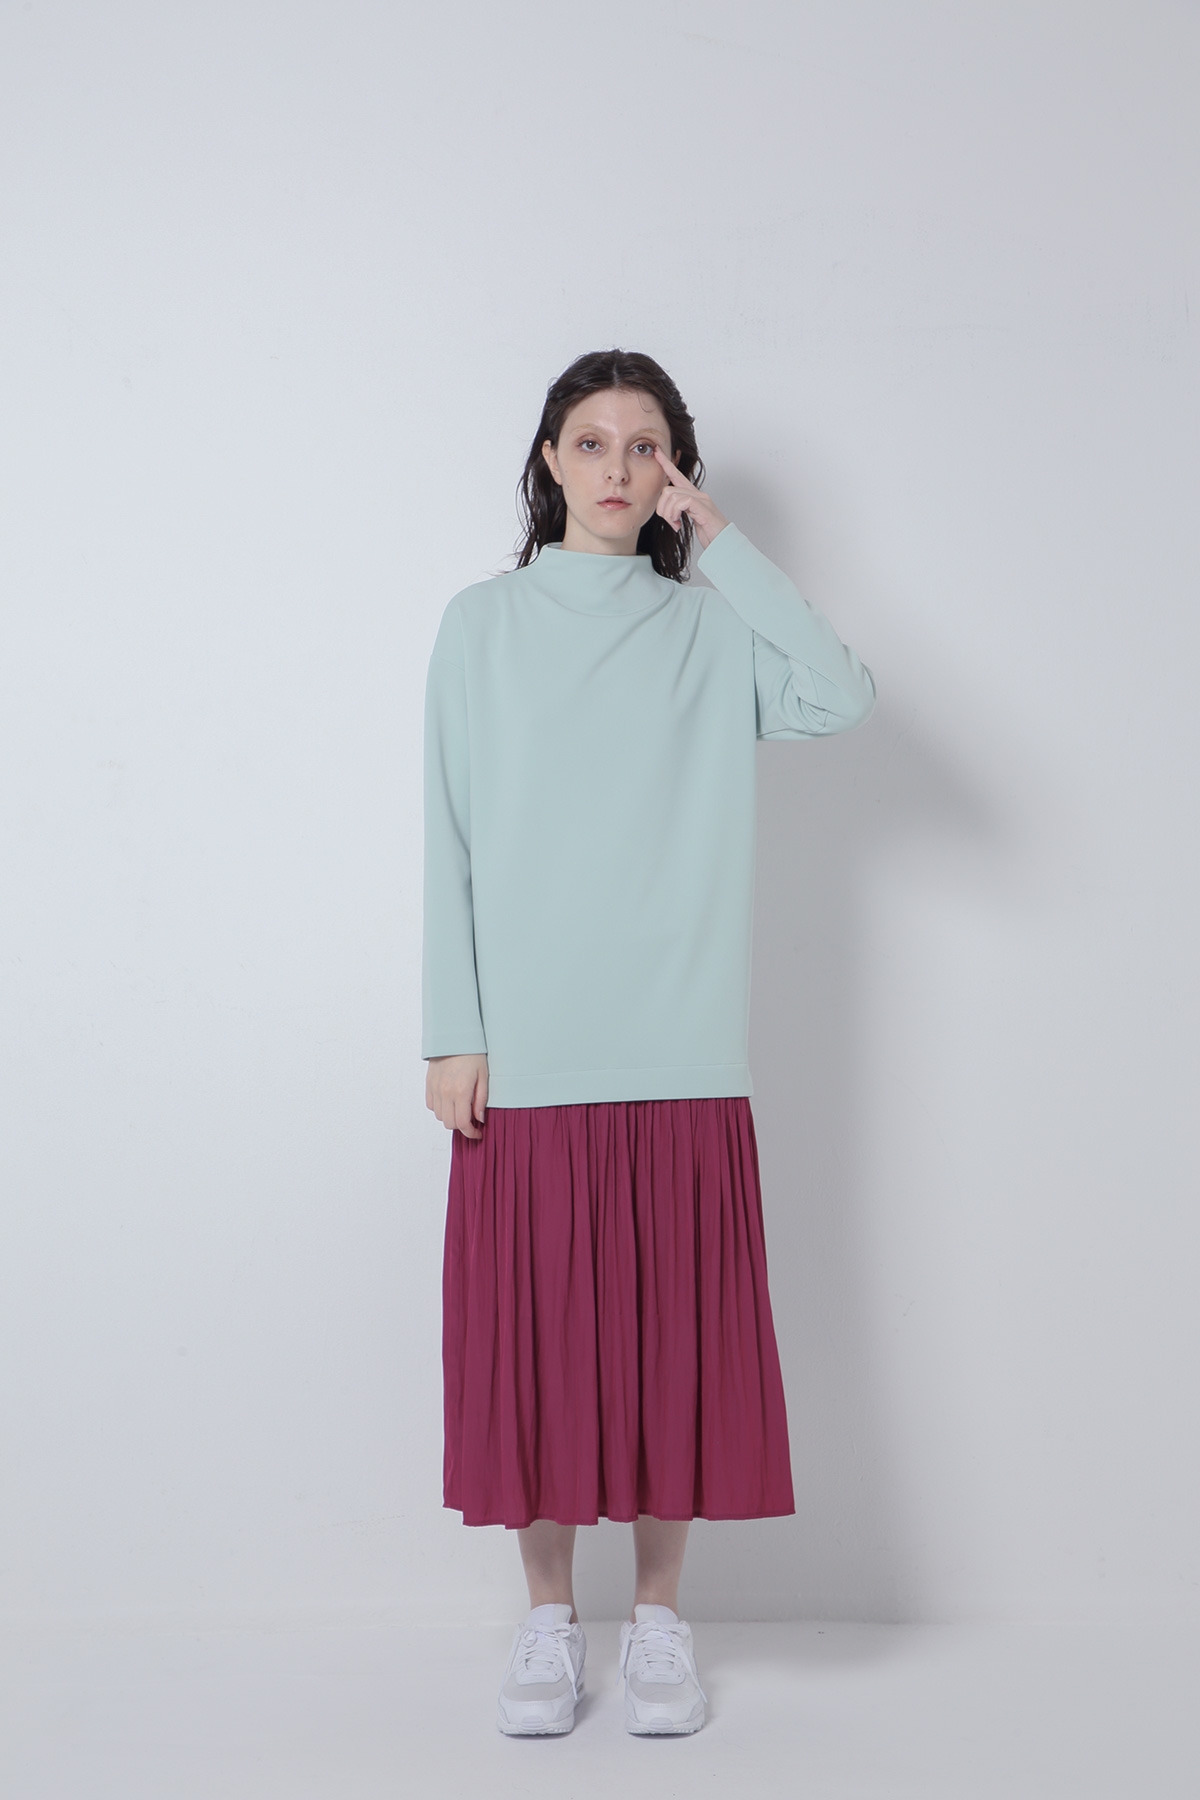 BO205708-lightgreen Aqua Suits Fabric×Ordinary de Chine Connect Dress-LIGHT GREEN-【BO205708】Del. Nov.